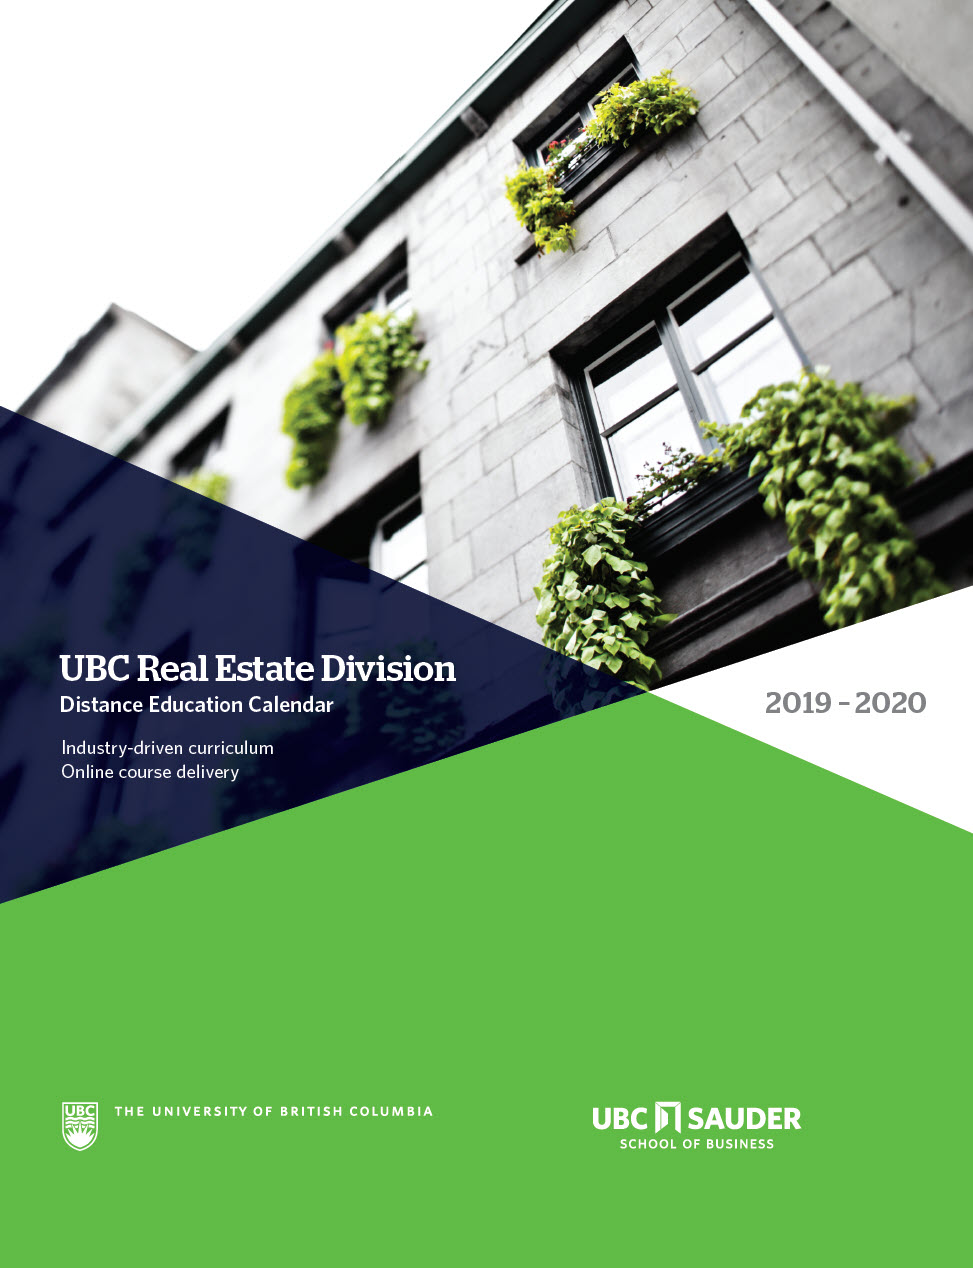 Real Estate Division Calendar (2019-2020)